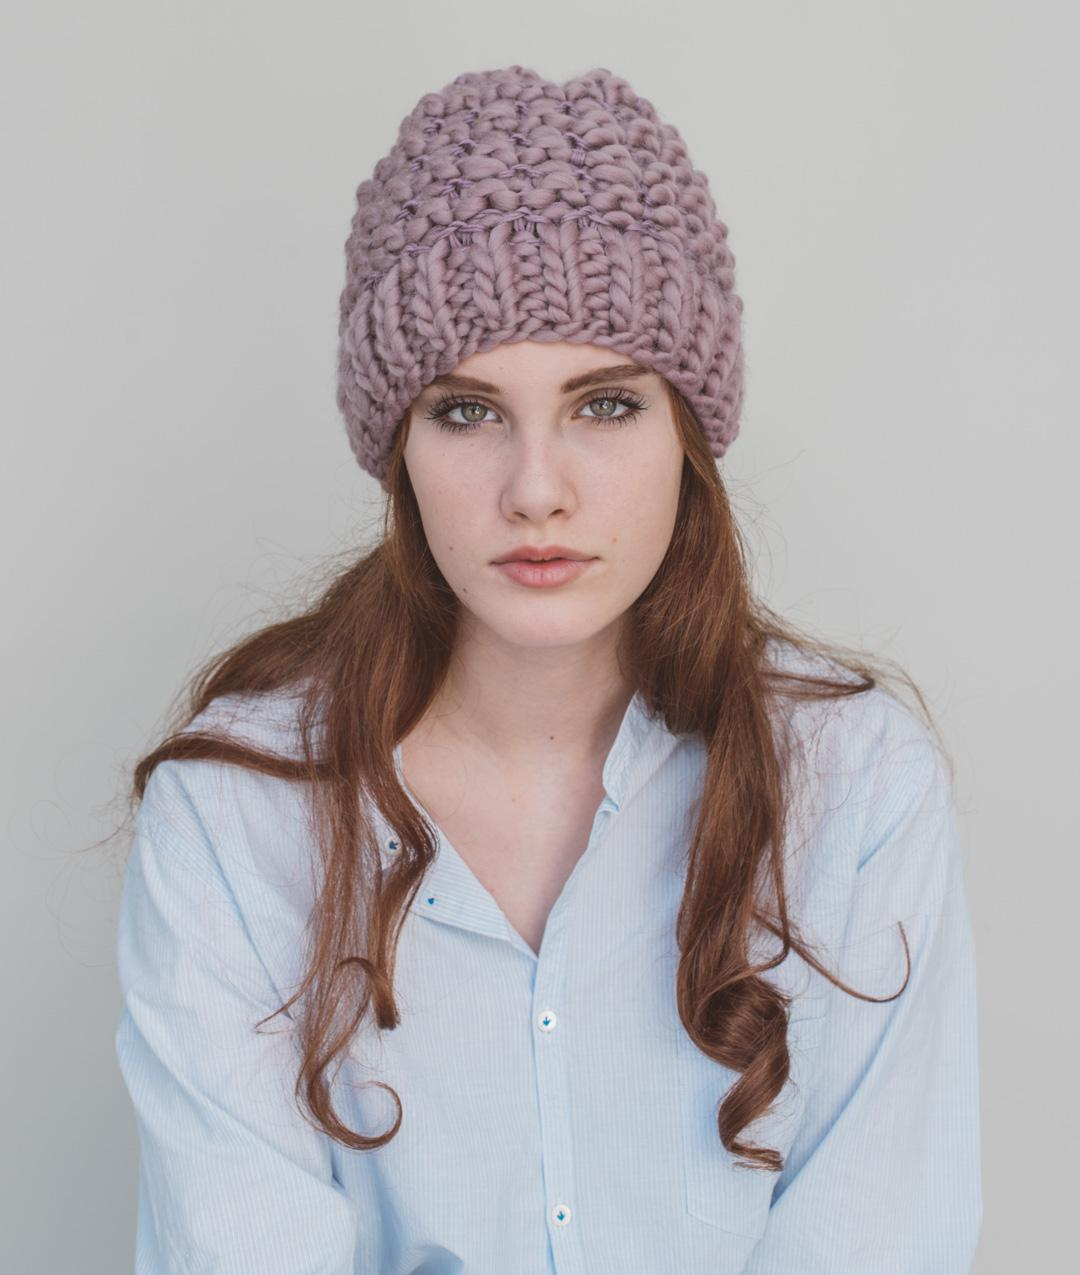 Hats and Beanies - Wool - ROMANTIC HAT - 1